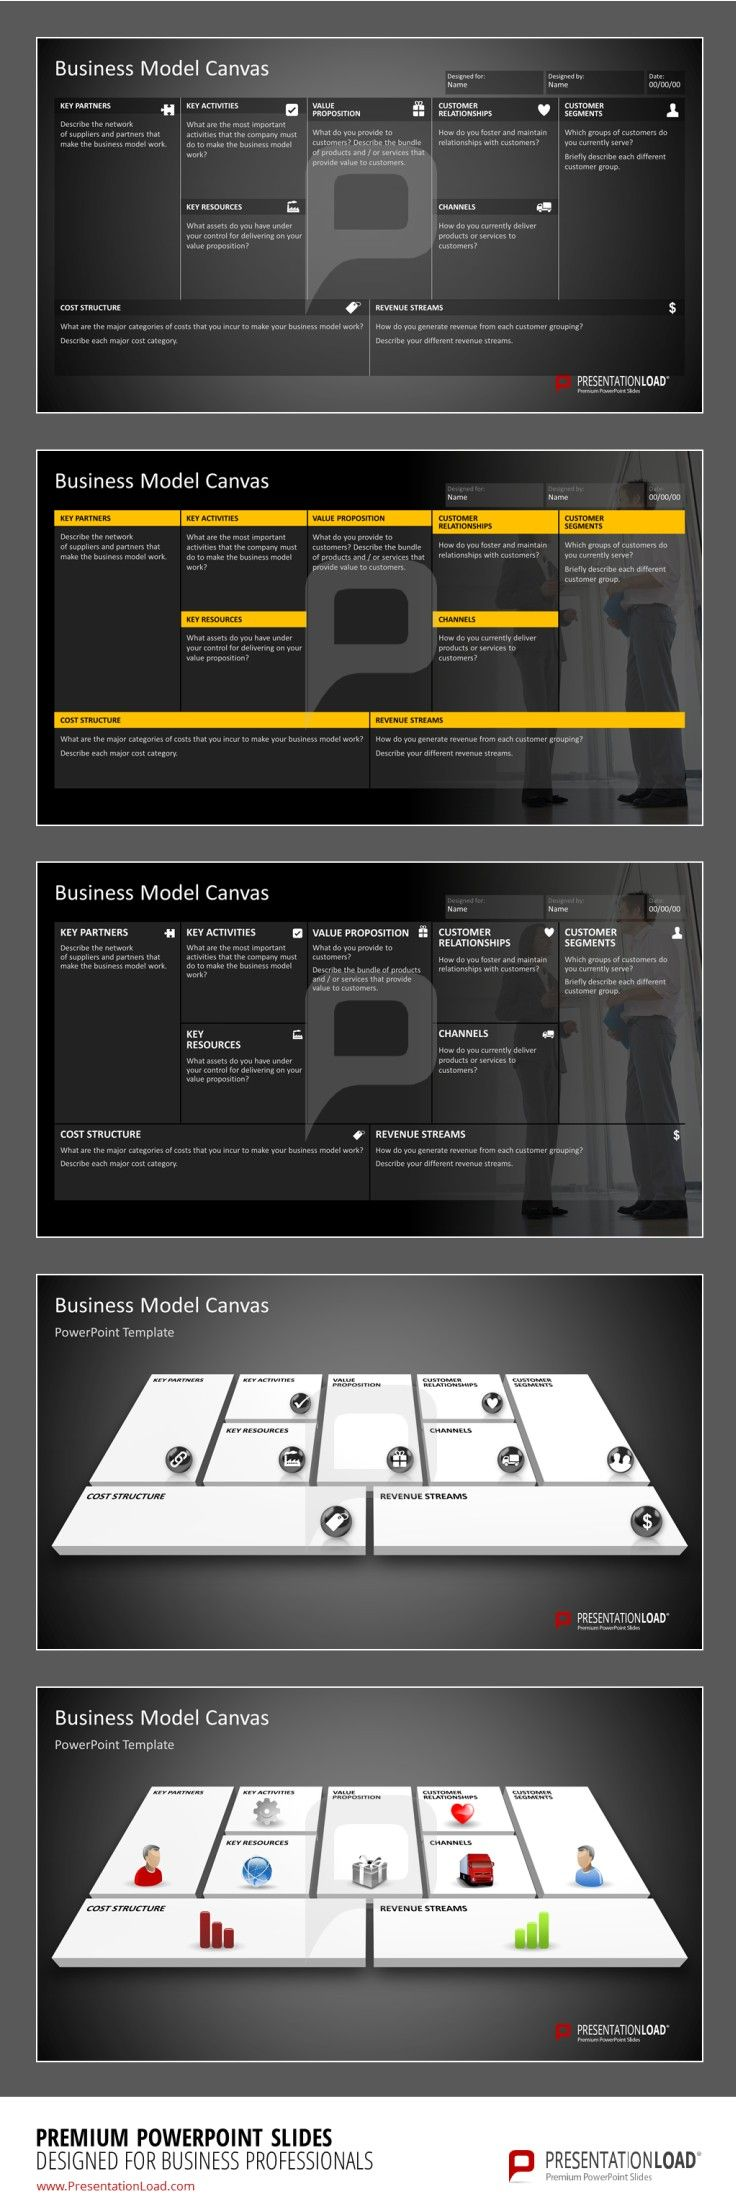 Best BUSINESS MODEL CANVAS POWERPOINT TEMPLATES Images On - Fresh business canvas template ppt design